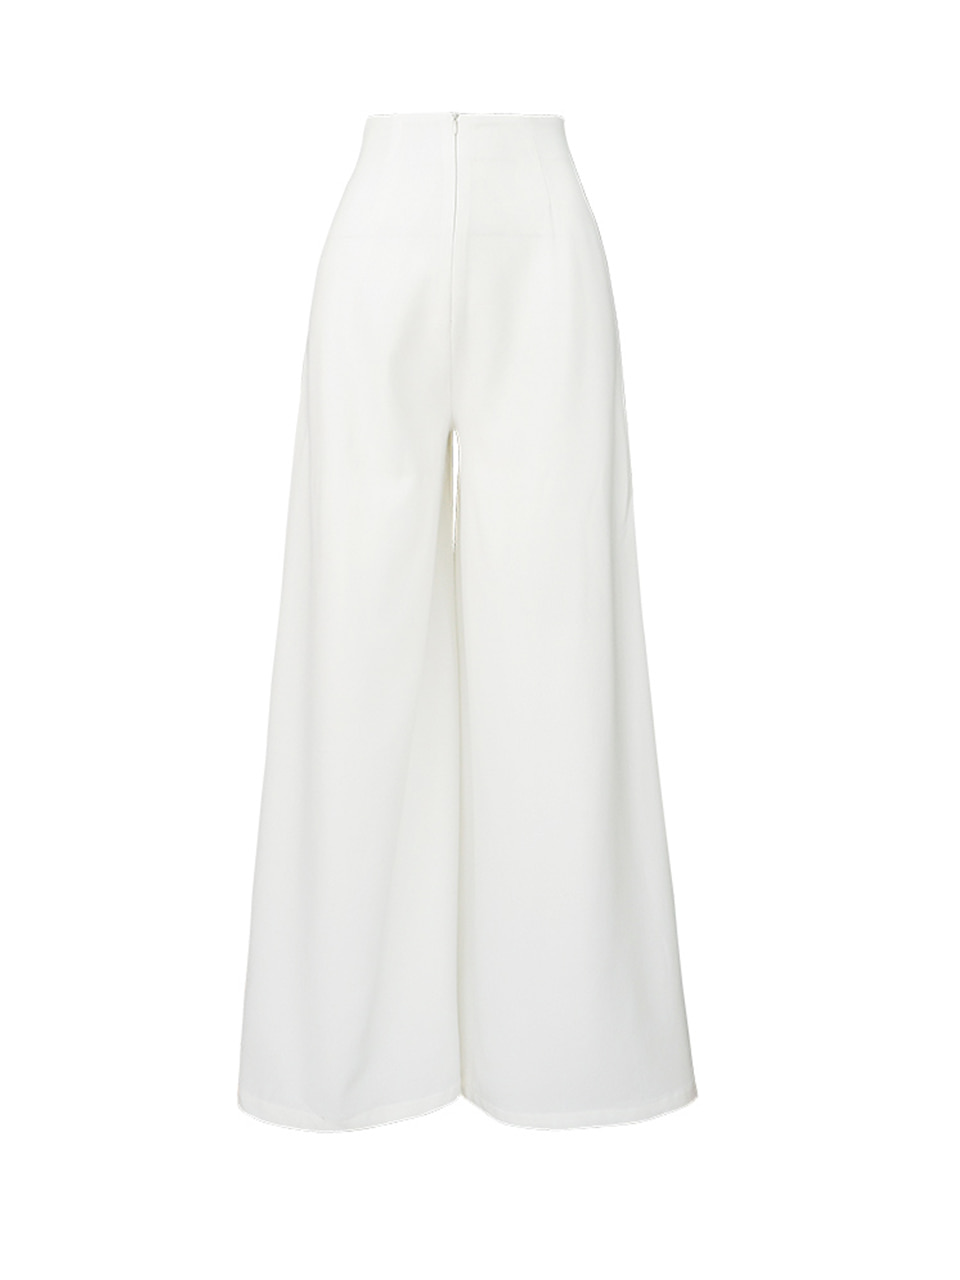 GUKAOlivewhite widepants